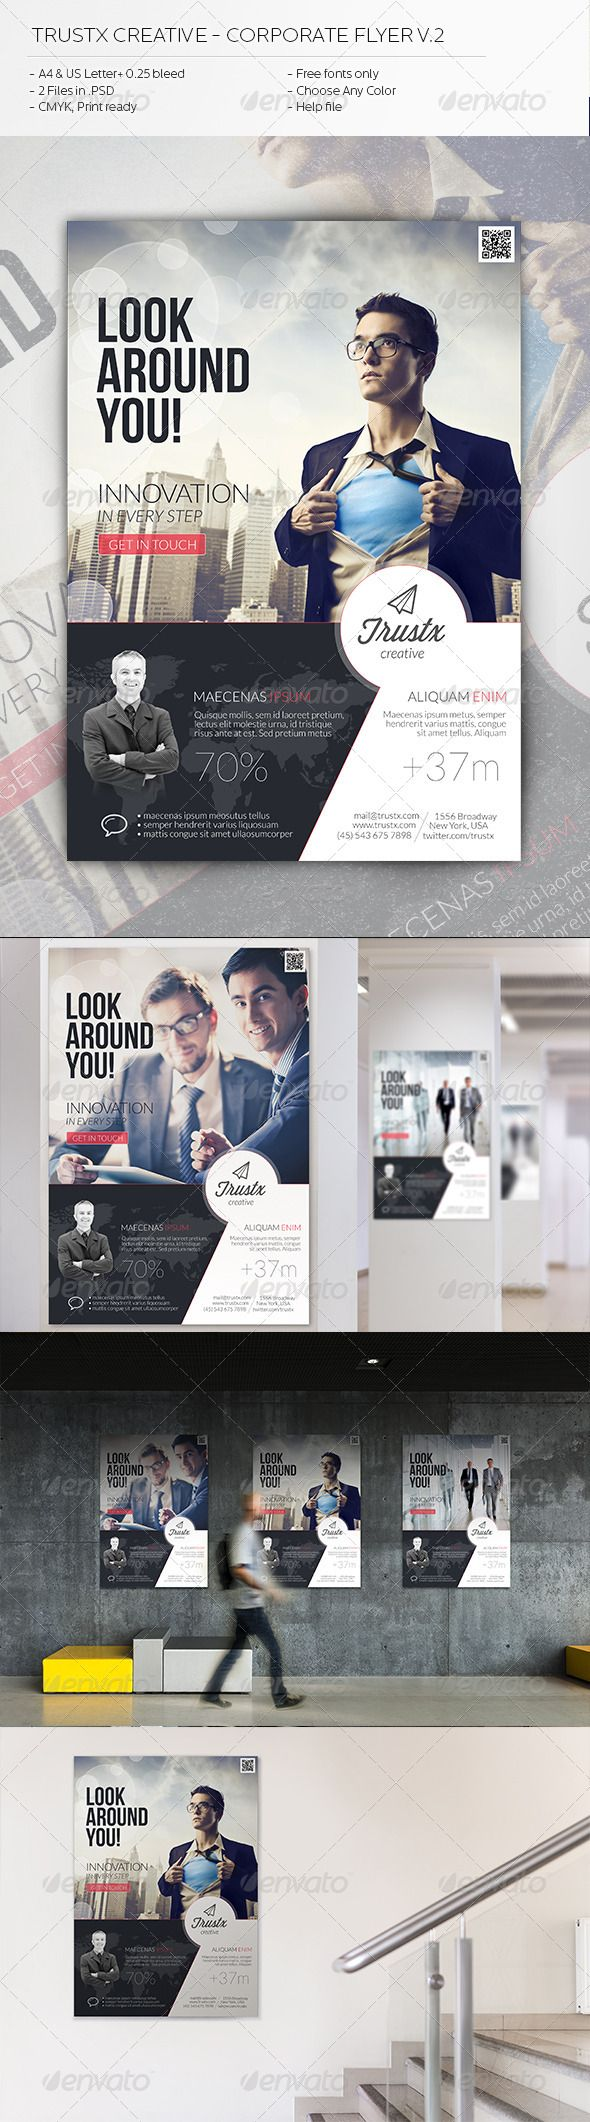 18 best Hiring Flyer Designs images on Pinterest | Flyer design ...